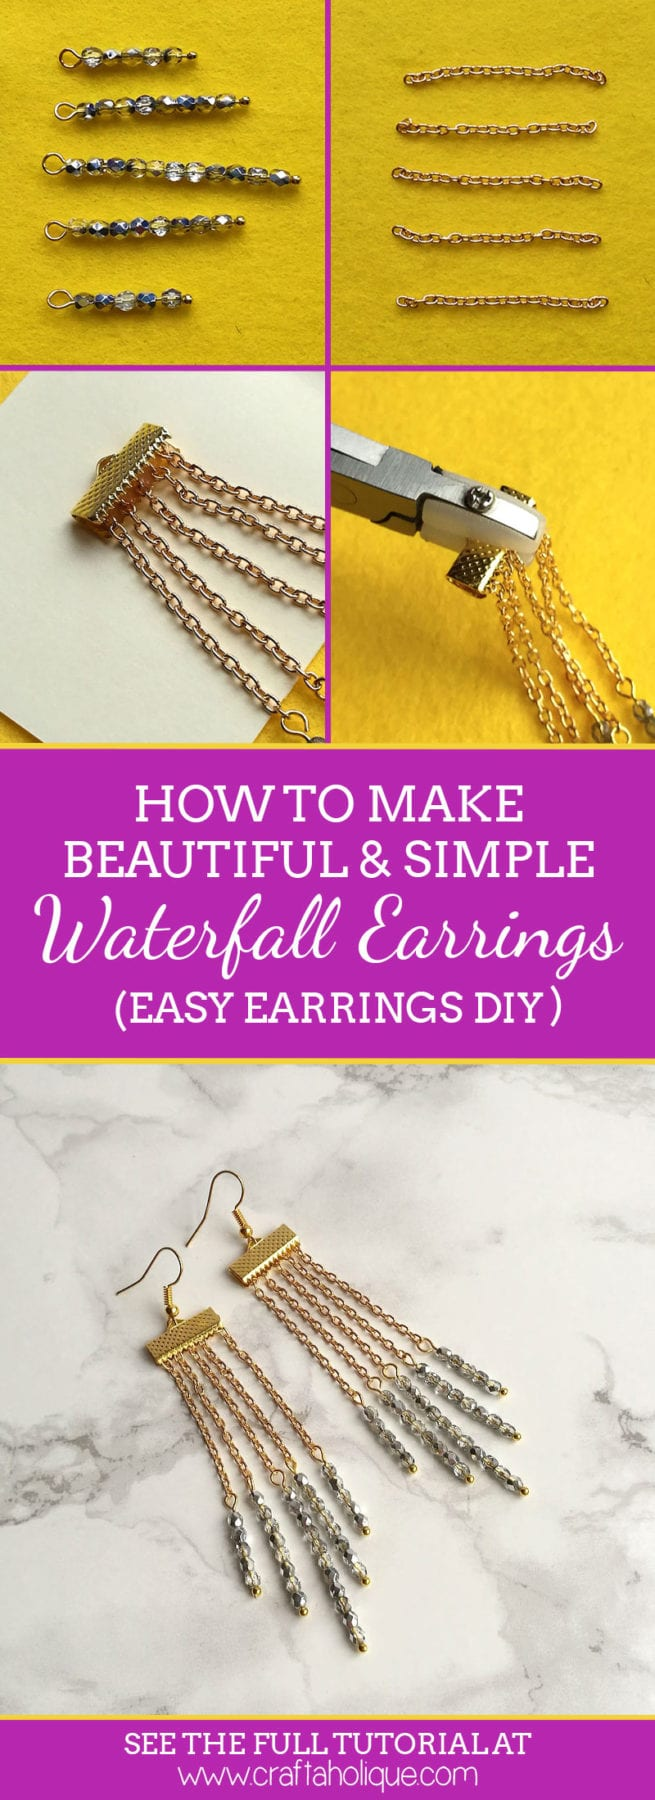 How to make a pair of waterfall earrings - easy earring DIY from Craftaholique